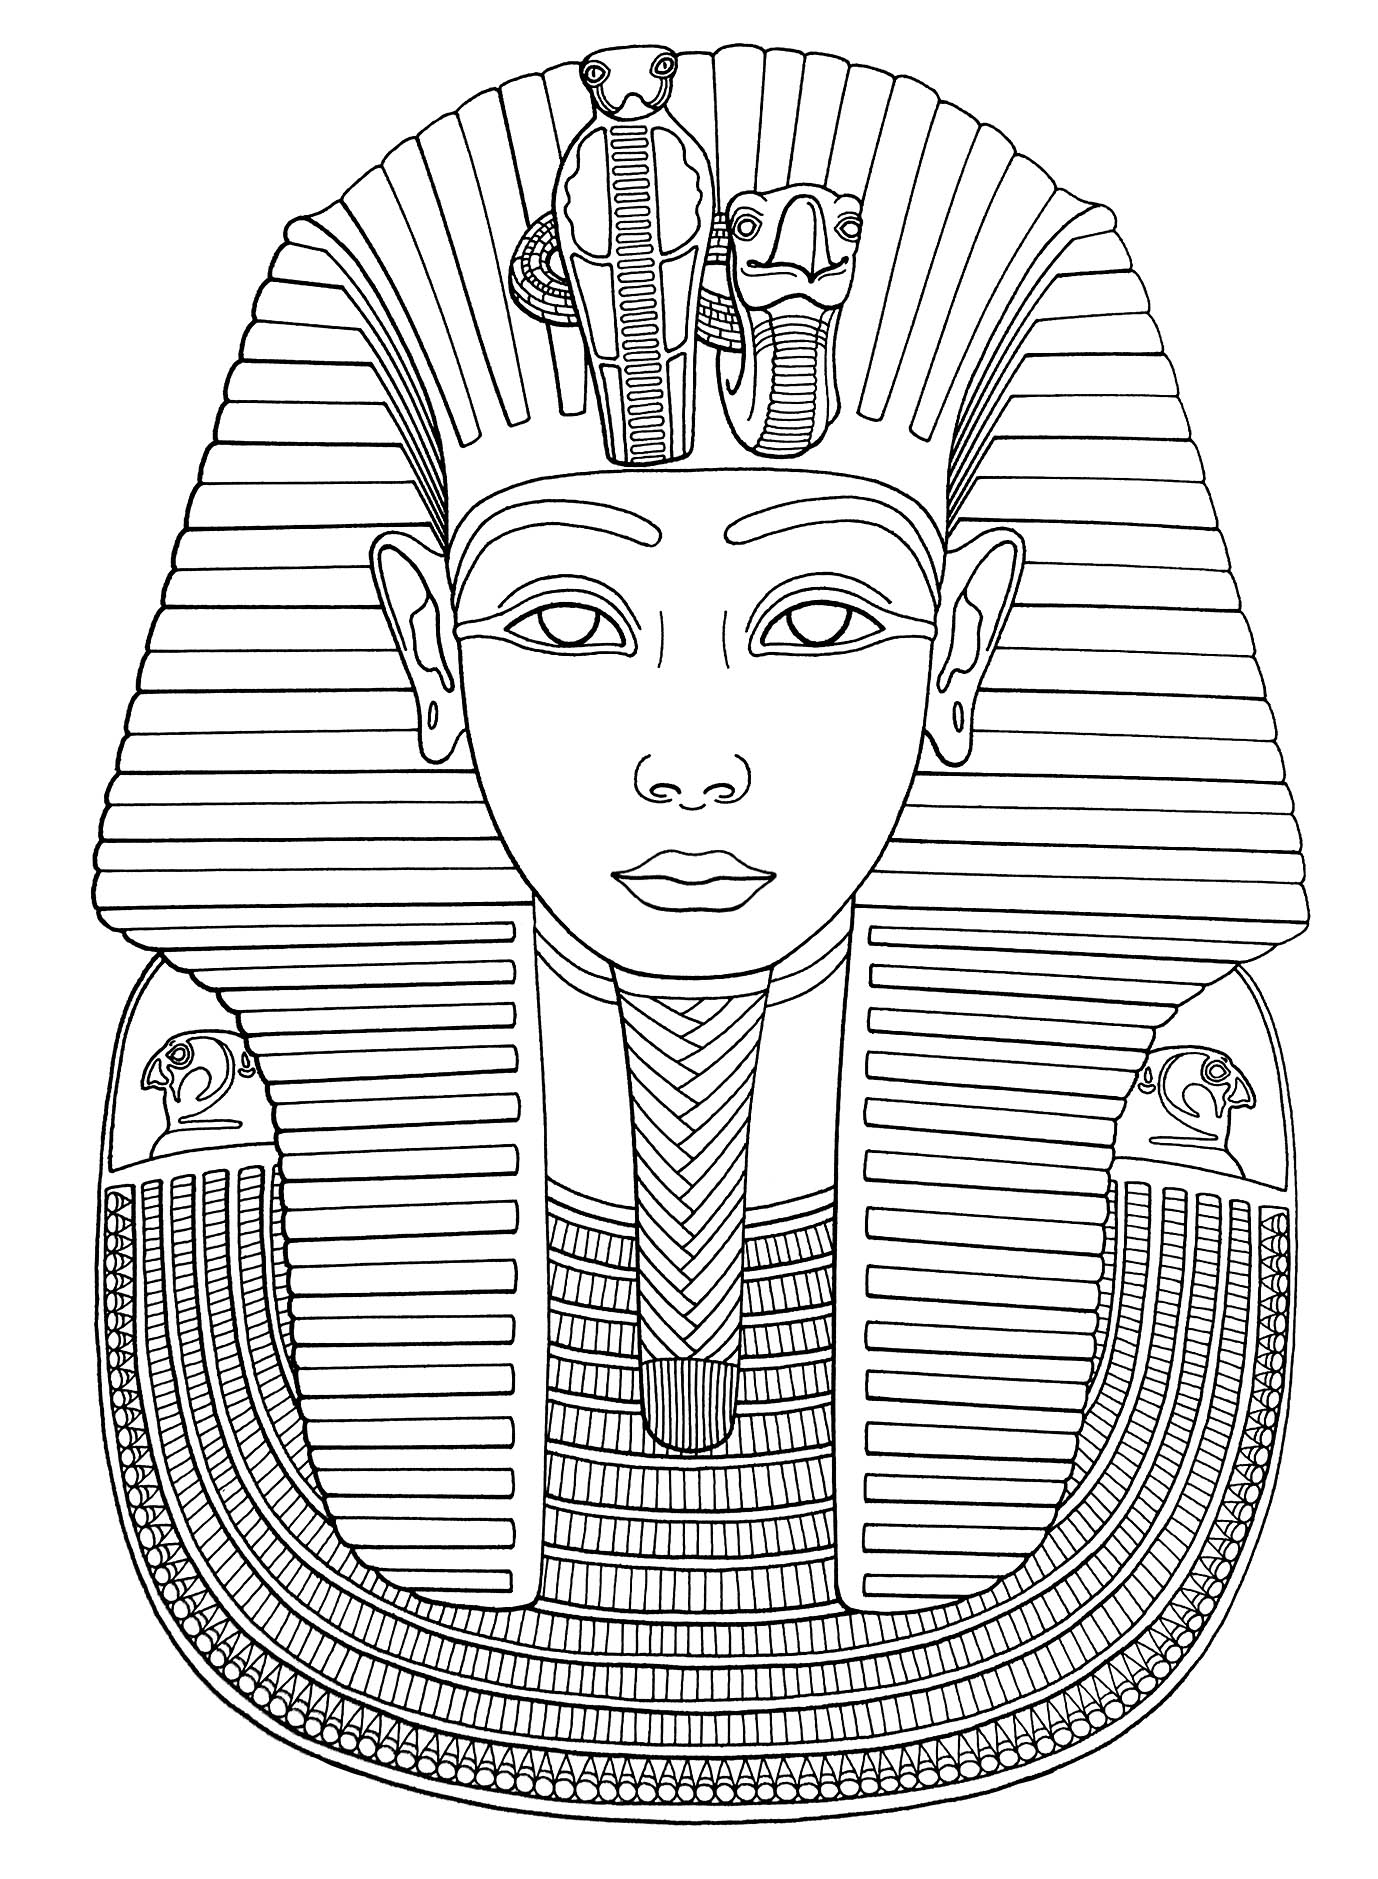 The mask of Tutankhamun is a gold death mask of the 18th-dynasty ancient Egyptian Pharaoh Tutankhamun. Color it !